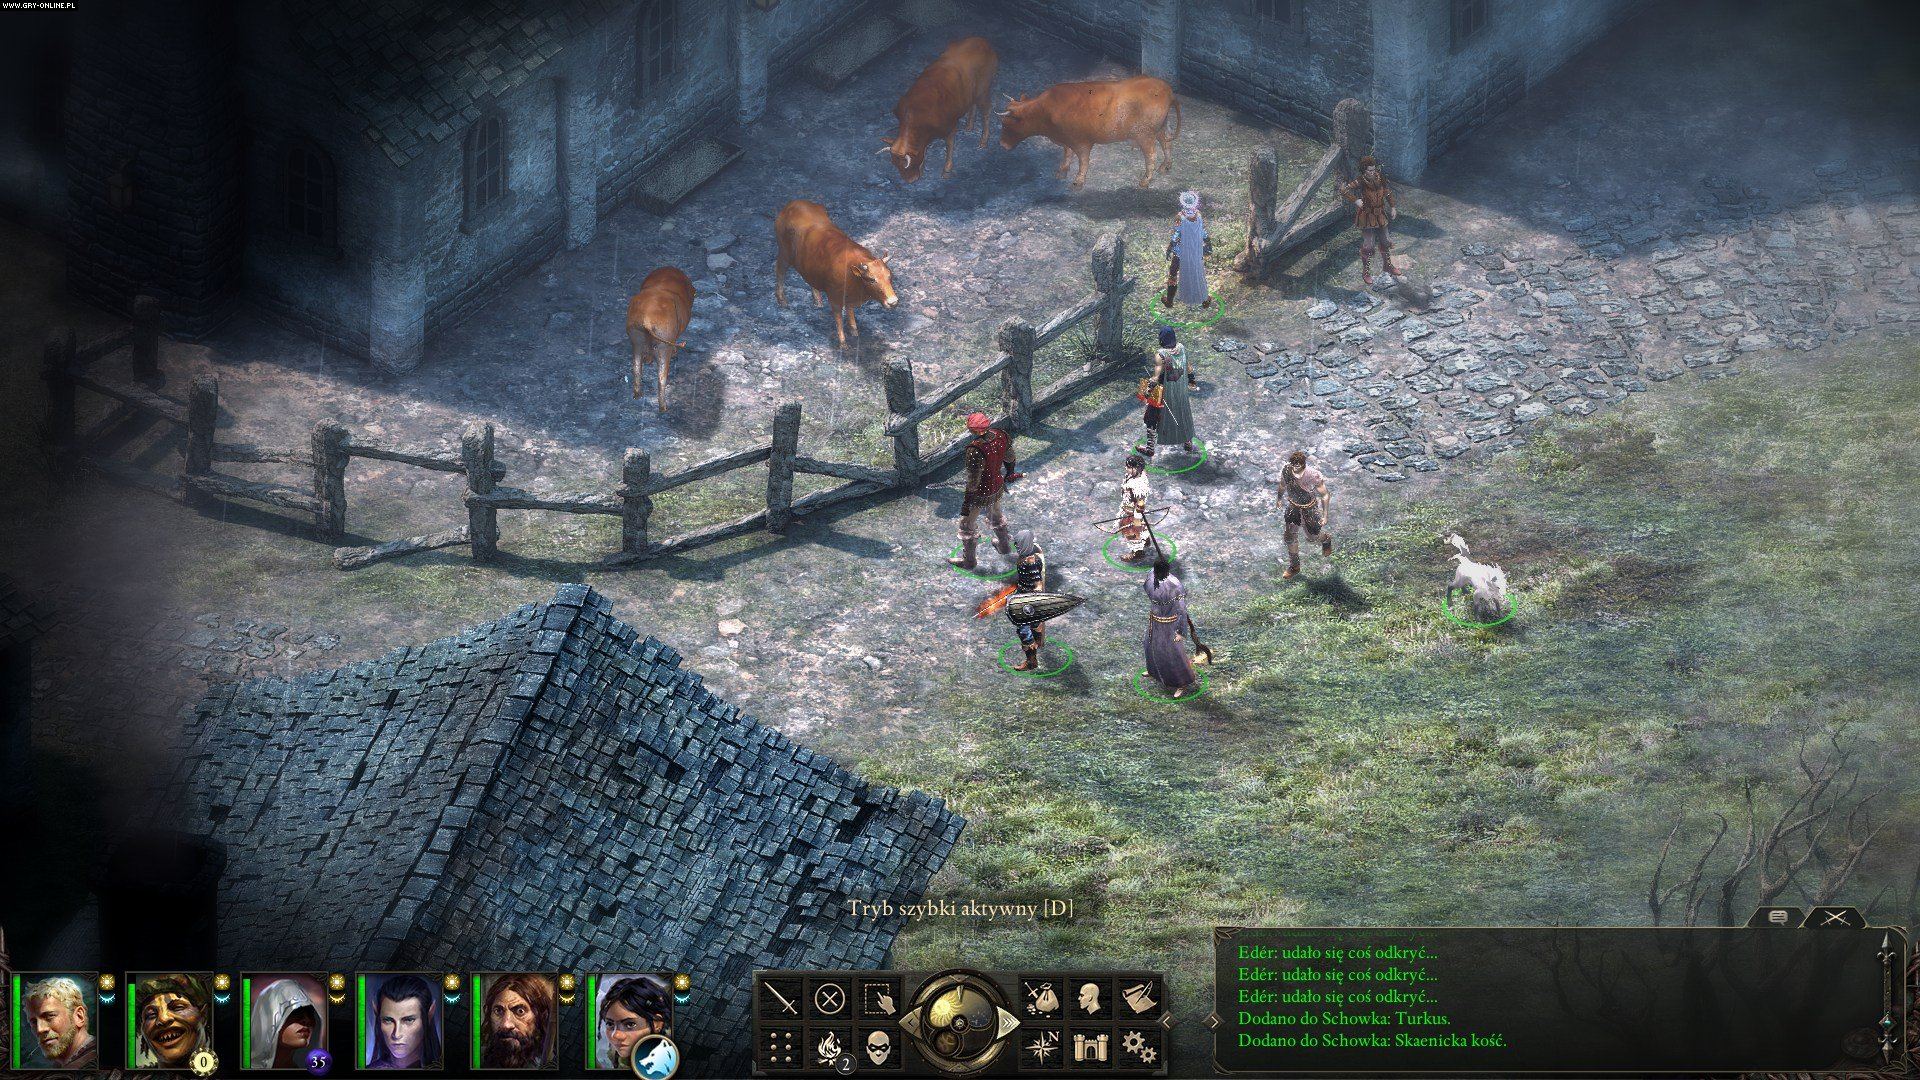 Pillars of Eternity PC Games Image 9/93, Obsidian Entertainment, Versus Evil